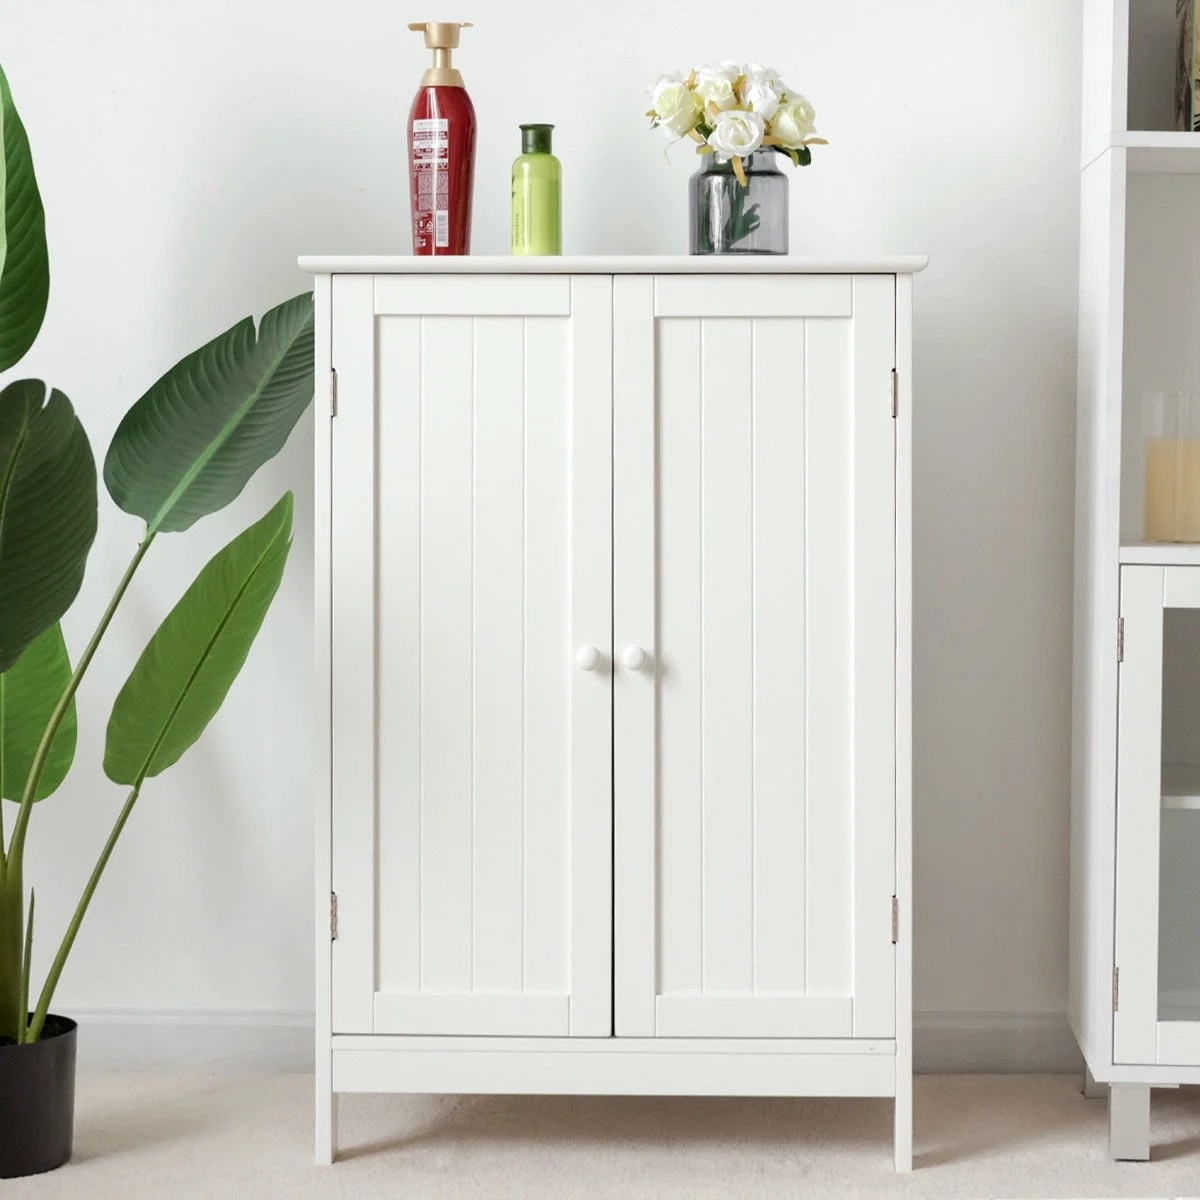 Bathroom Storage Cabinet Buy Bathroom Cabinets Storage Online At Overstock Our Best